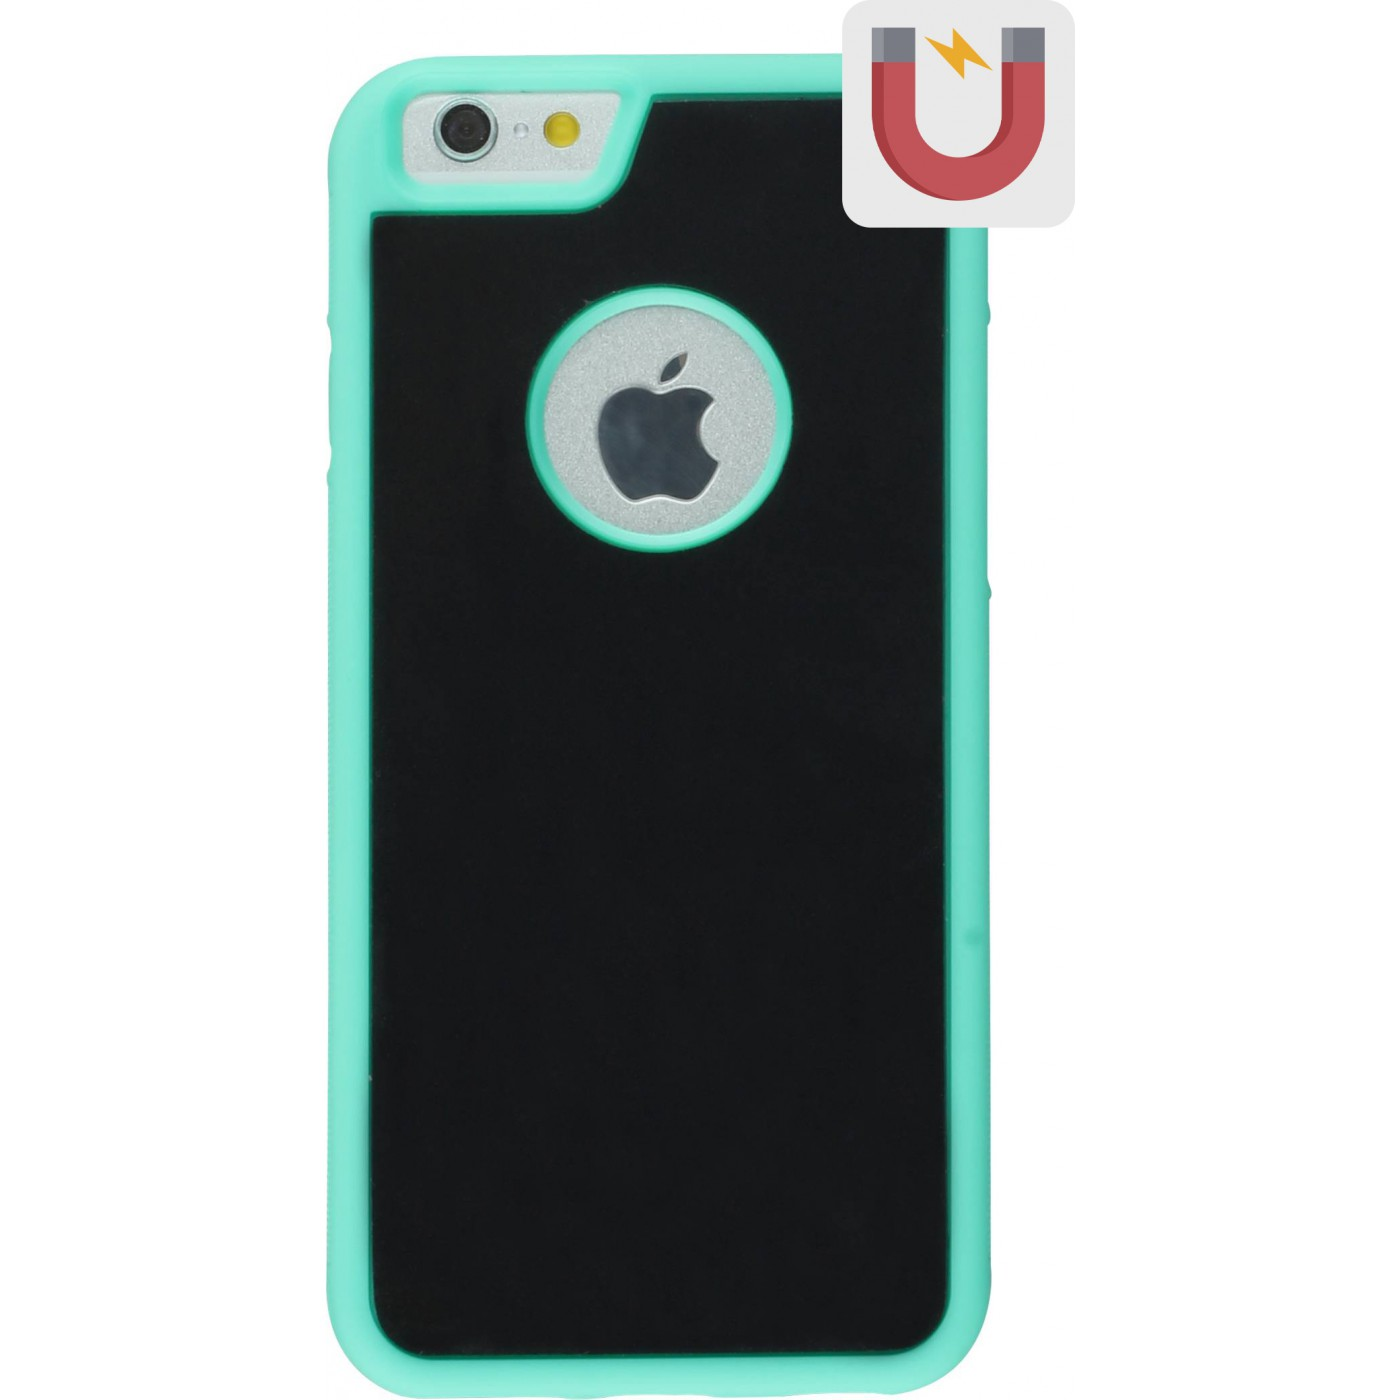 coque antigravity iphone 7 plus